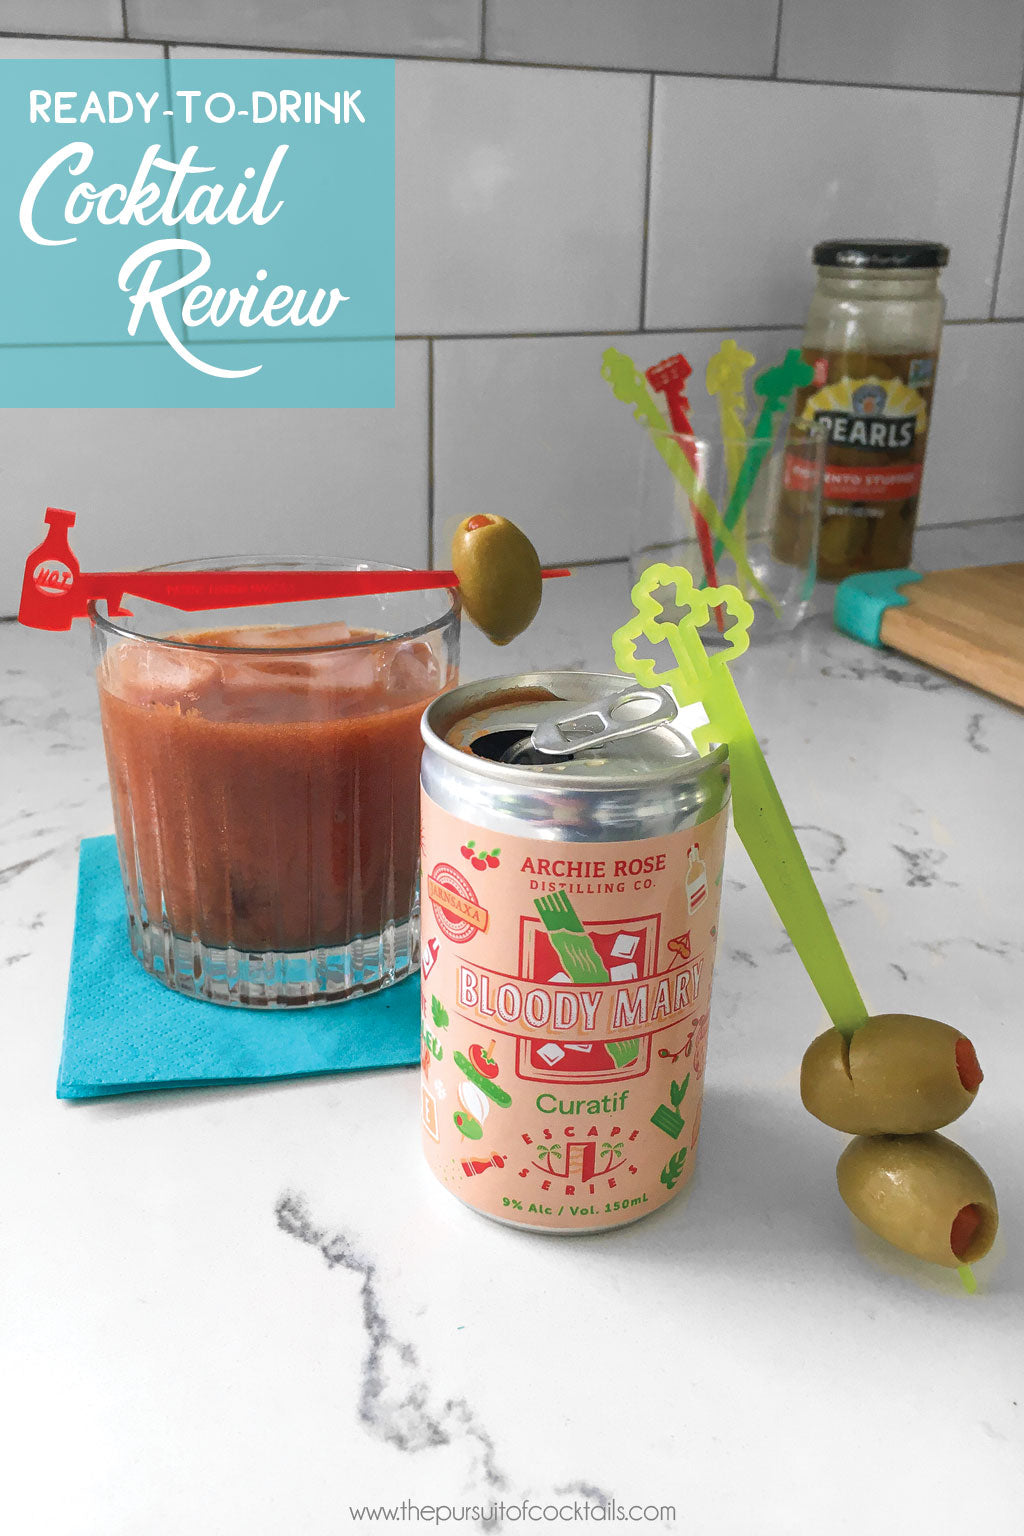 Ready-to-drink bloody mary review of Curatif Archie Rose Bloody Mary